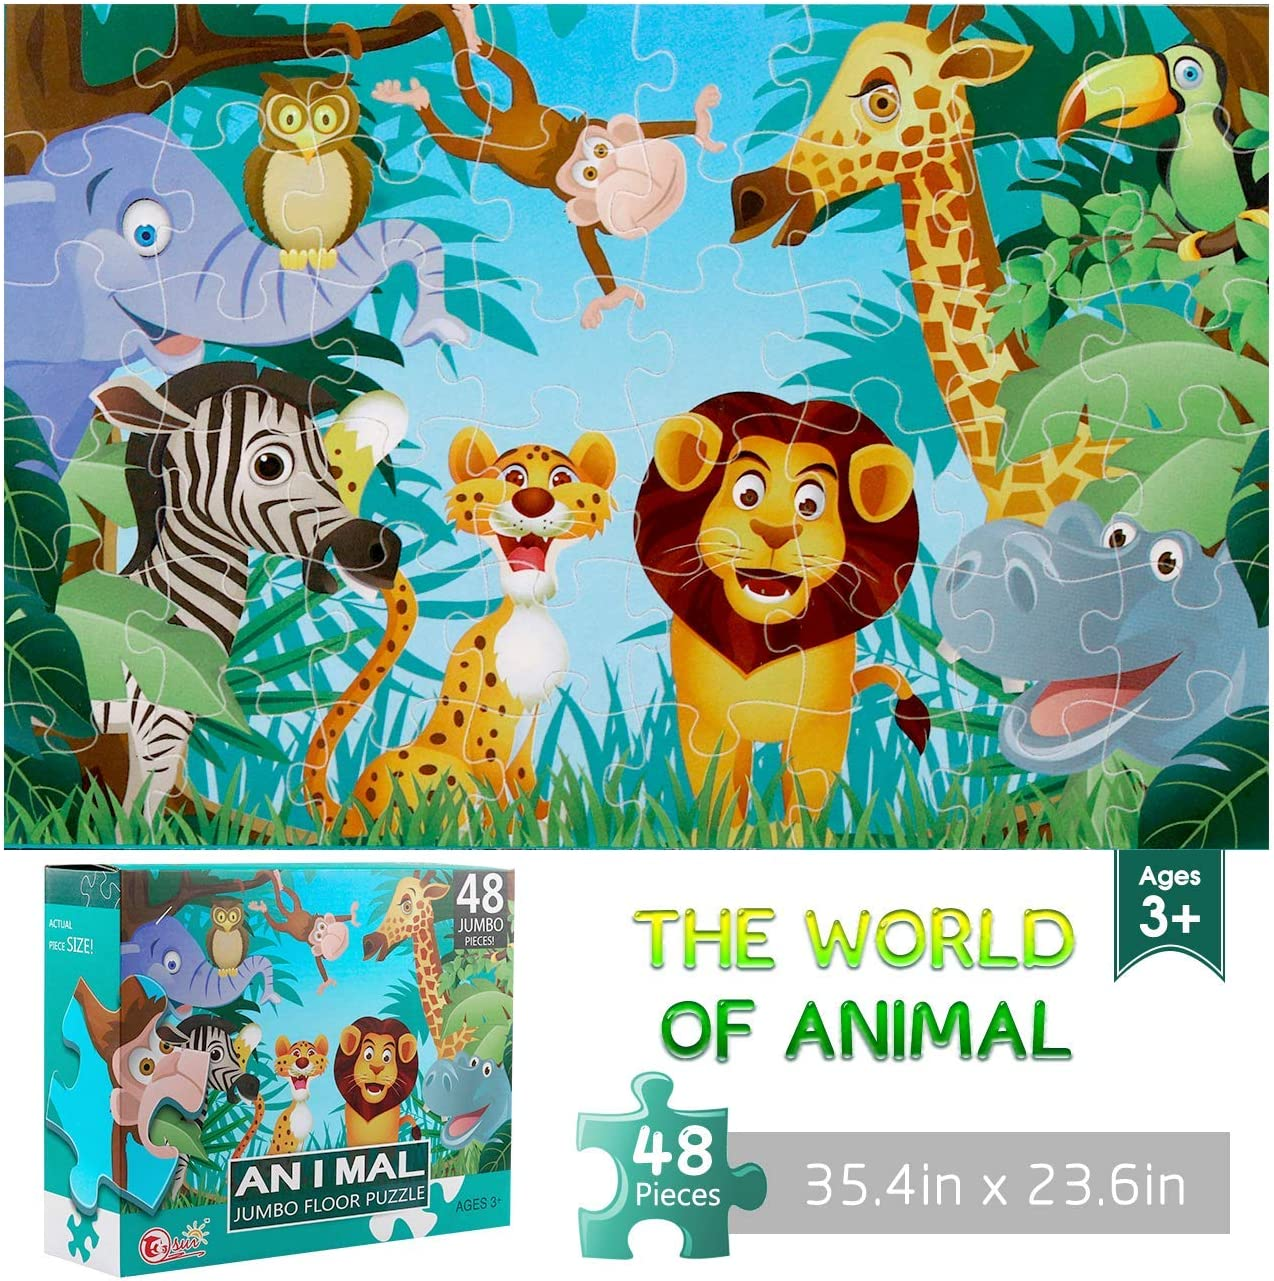 Jumbo Floor Puzzle sale for Kids Animal 48 price Large Puzzles Piece Jigsaw